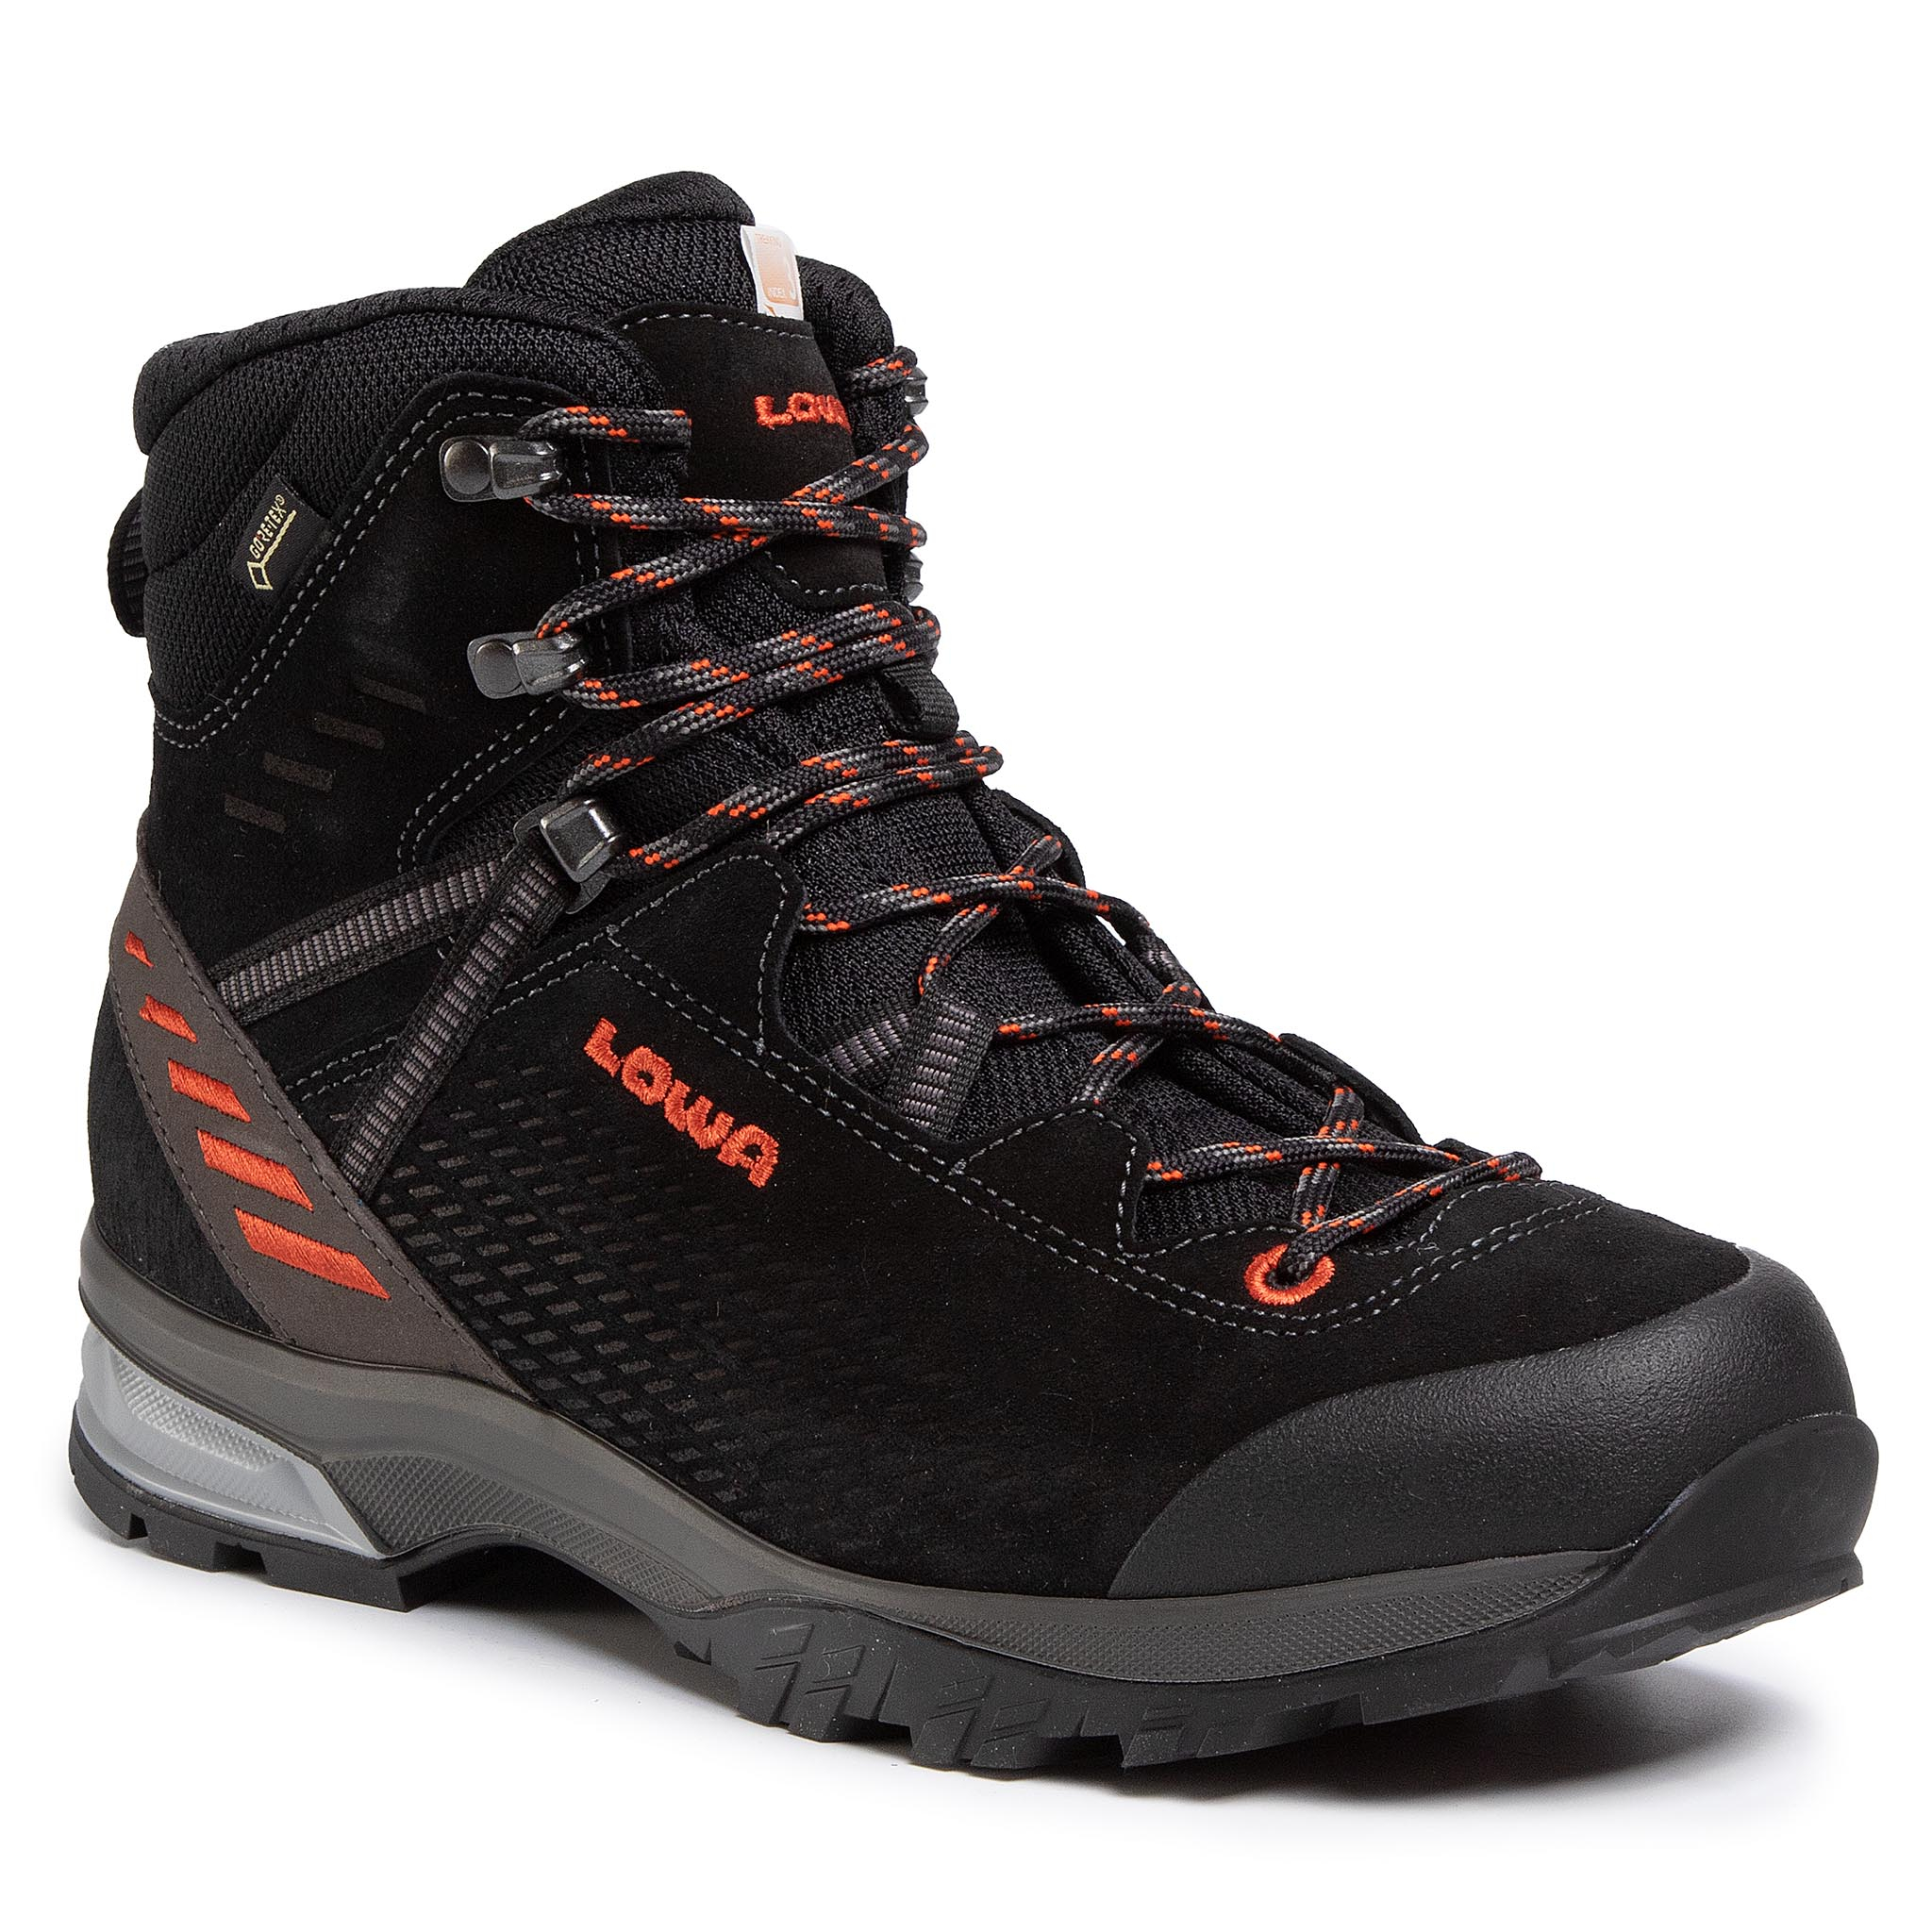 Trekkings Lowa - Ledro Gtx Mid Gorwe-Tex 210716 Black/Flame 9960 imagine epantofi.ro 2021